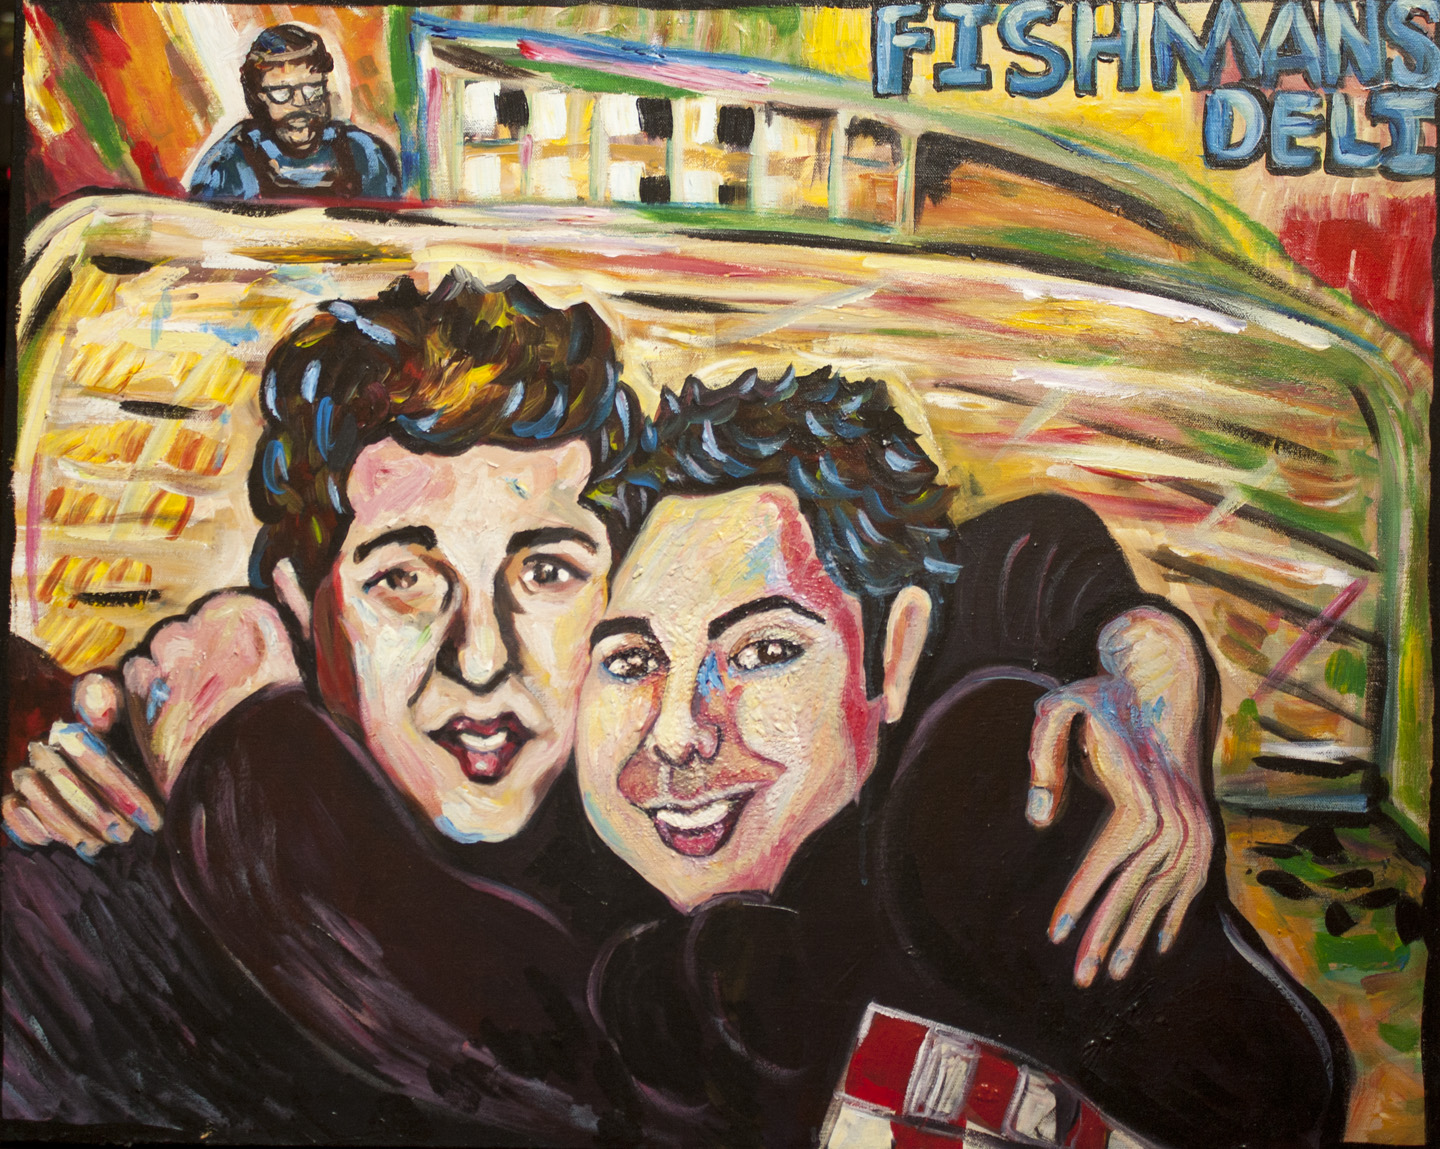 Magic Marc and Richard Gittelson / March 29, 2011 / 24 x 30  Acrylic Painting on Canvas by Gretchen Seichrist